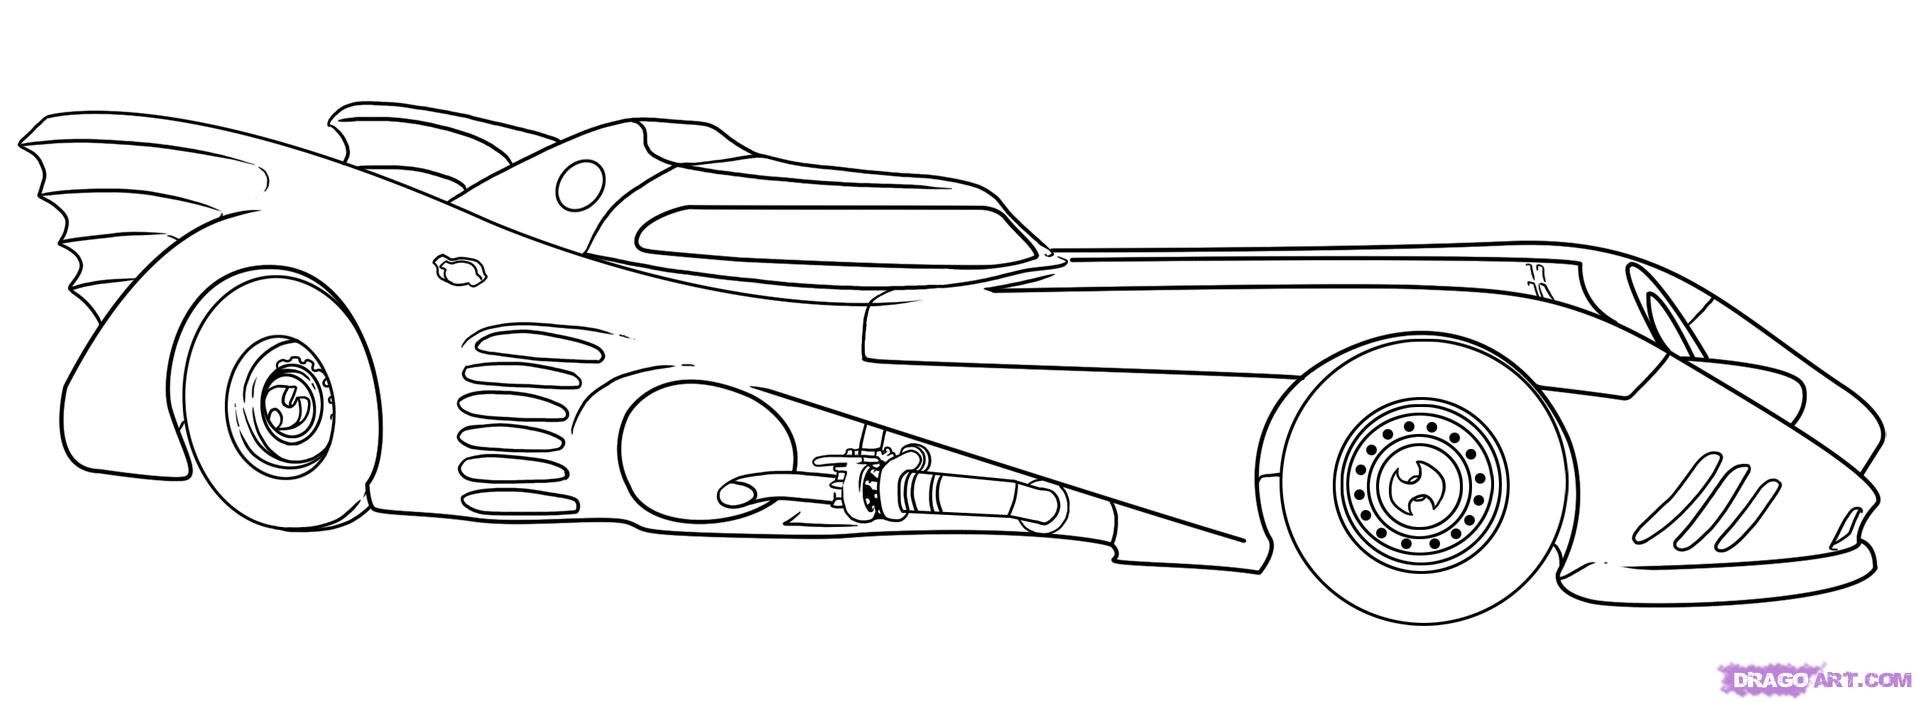 Batmobile Coloring Page - Coloring Home